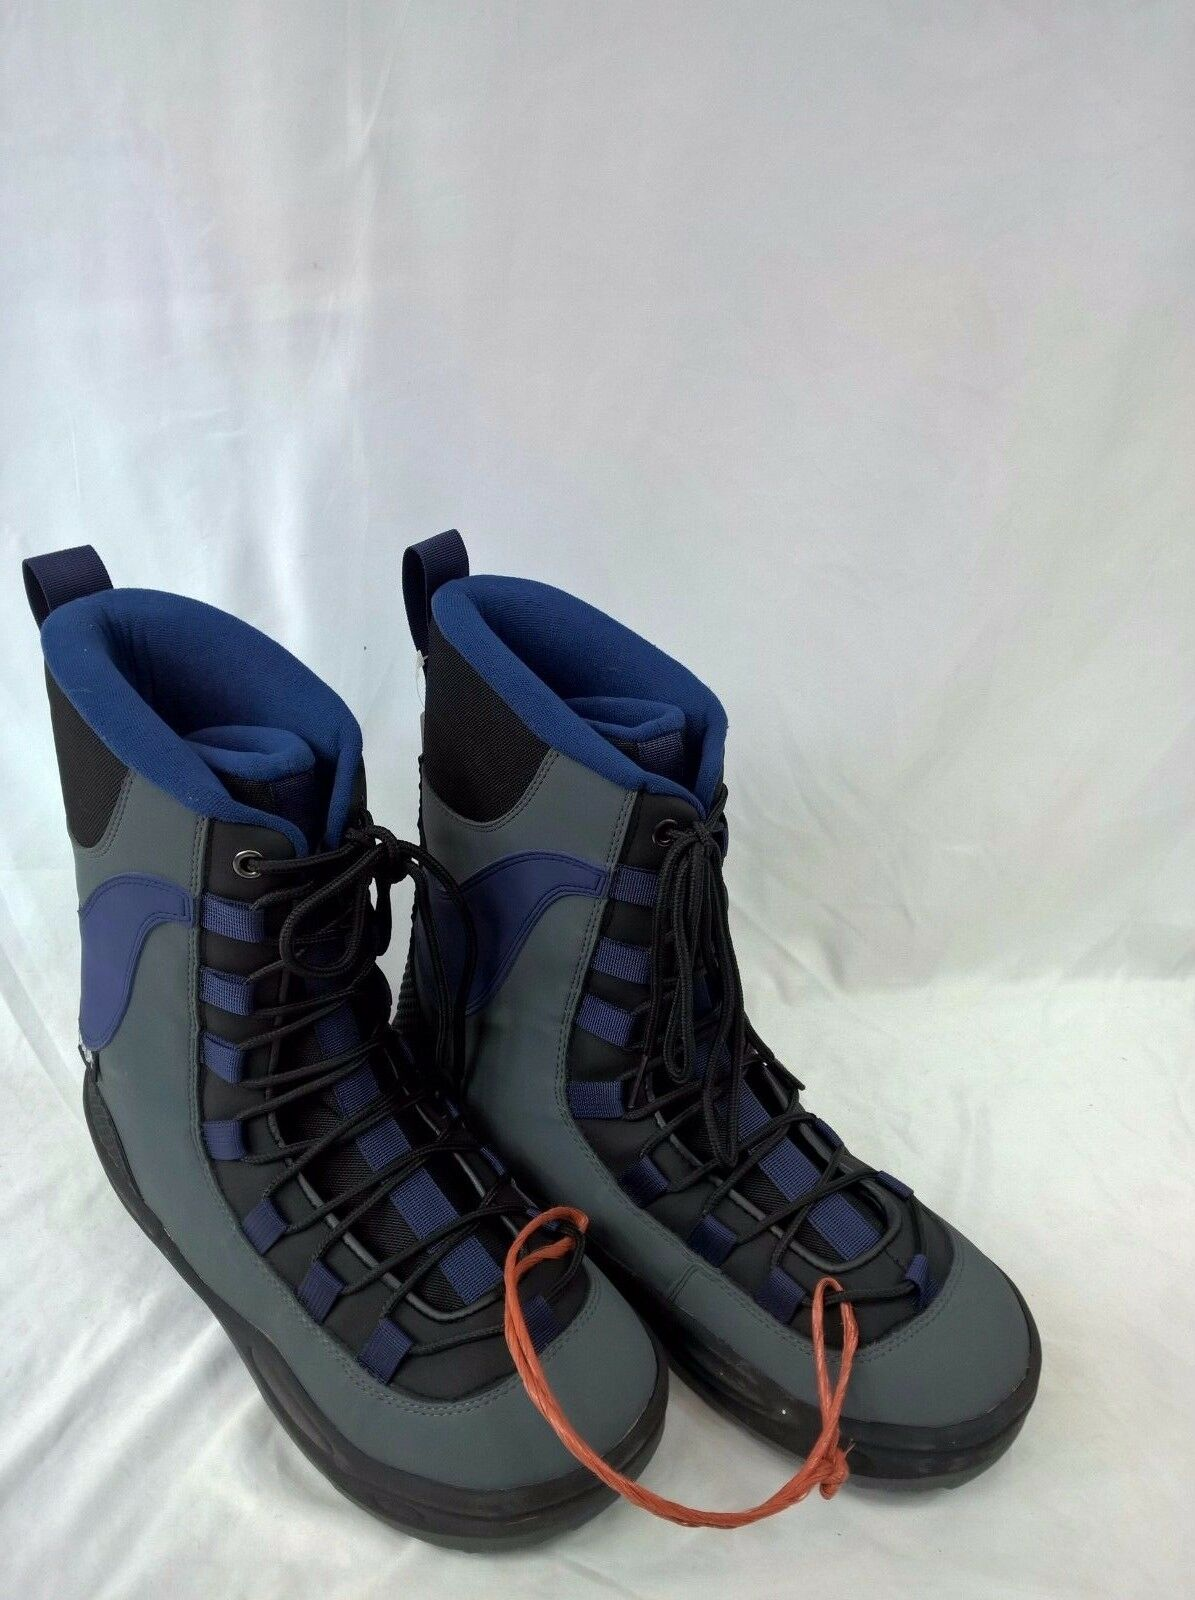 BIG SIZE SNOWBOARD BOOTS, SNOWJAM  Wave Snowboard  Boots,SEND TOE TO HEEL MEASURE  hot sale